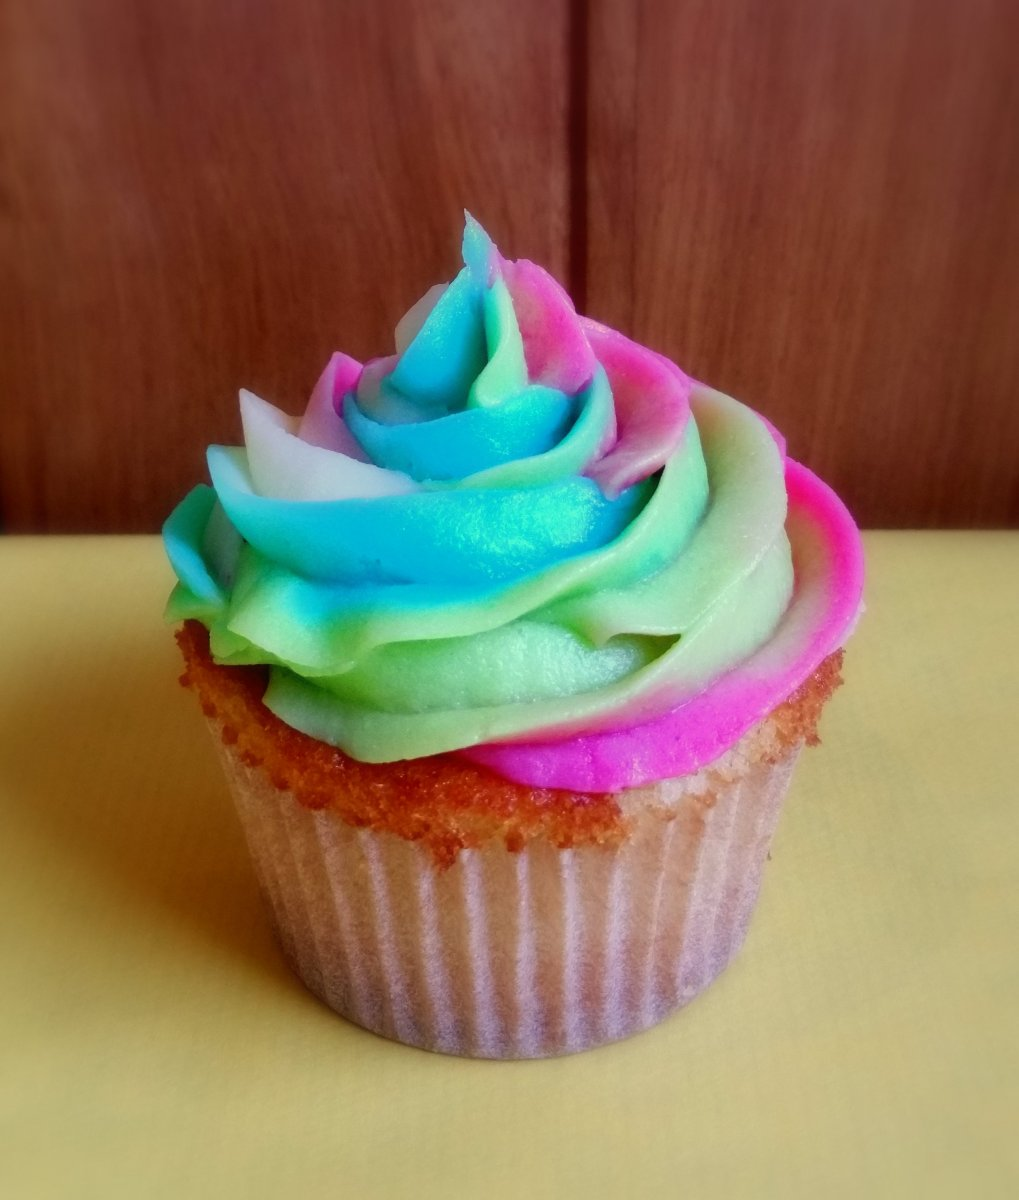 Cupcakes arcoiris con buttercream multicolor